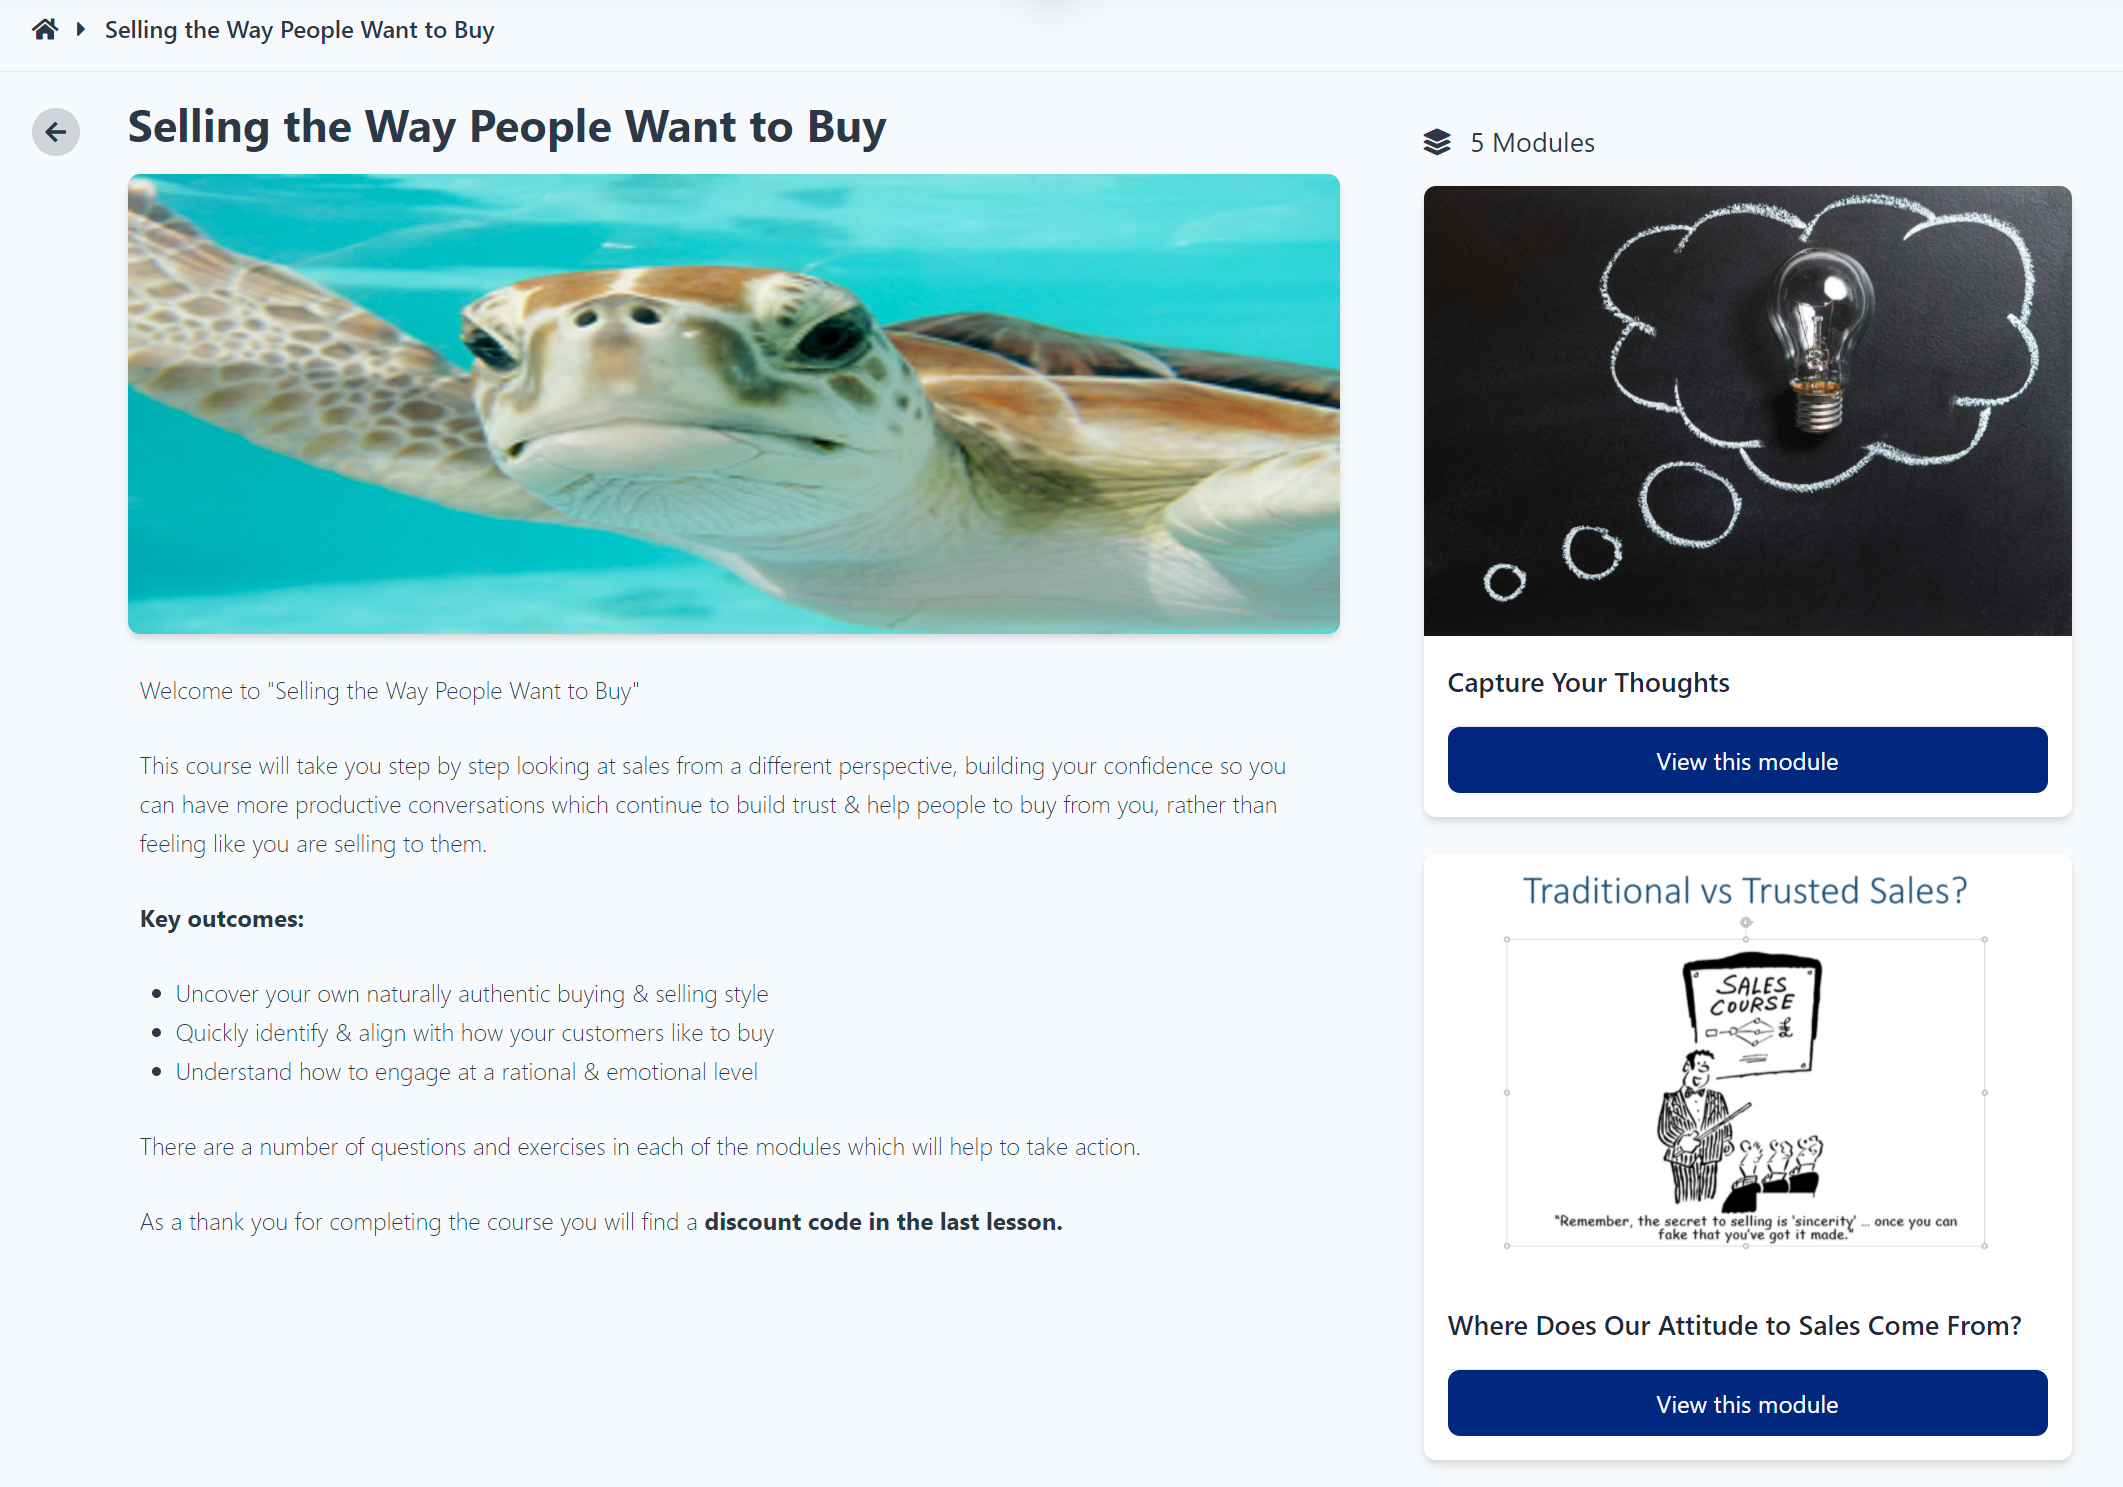 Selling the way people want to buy